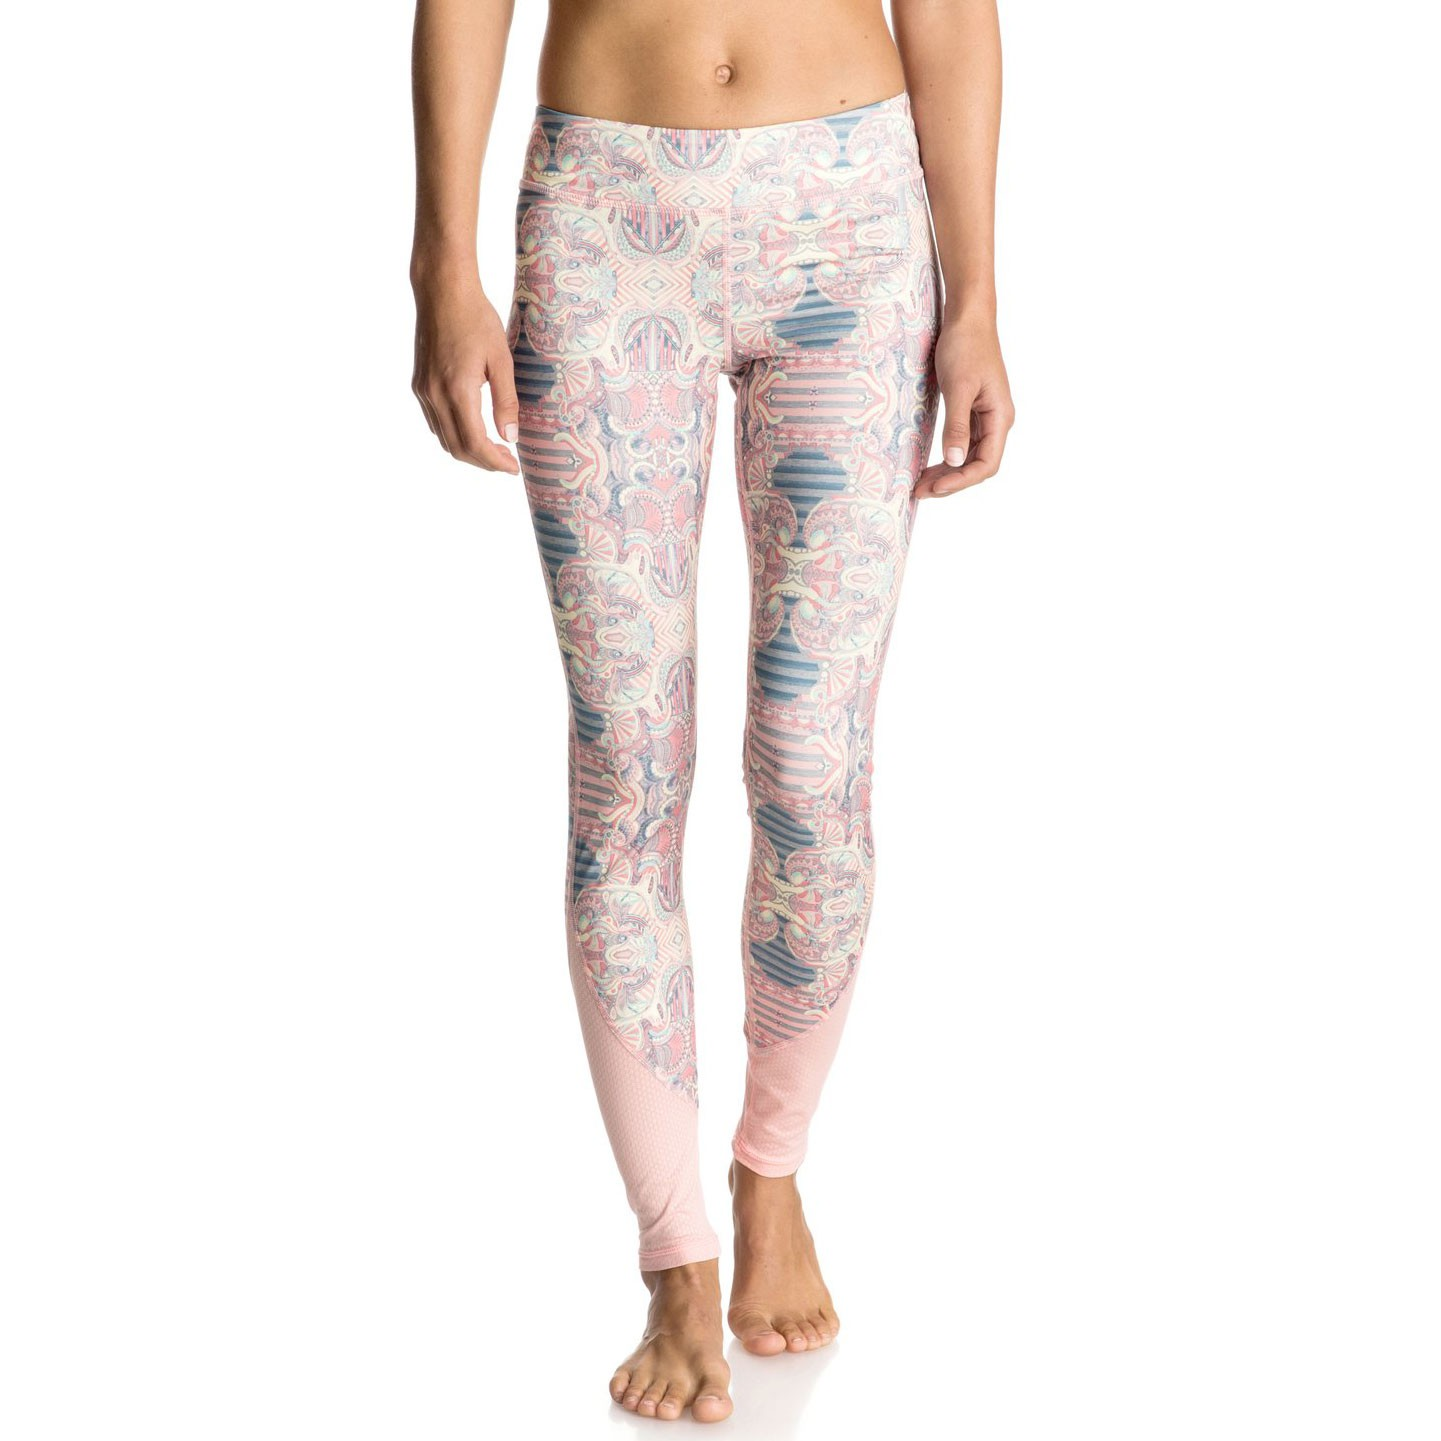 Legíny Roxy Imanee Printed Pant heritage heather playground